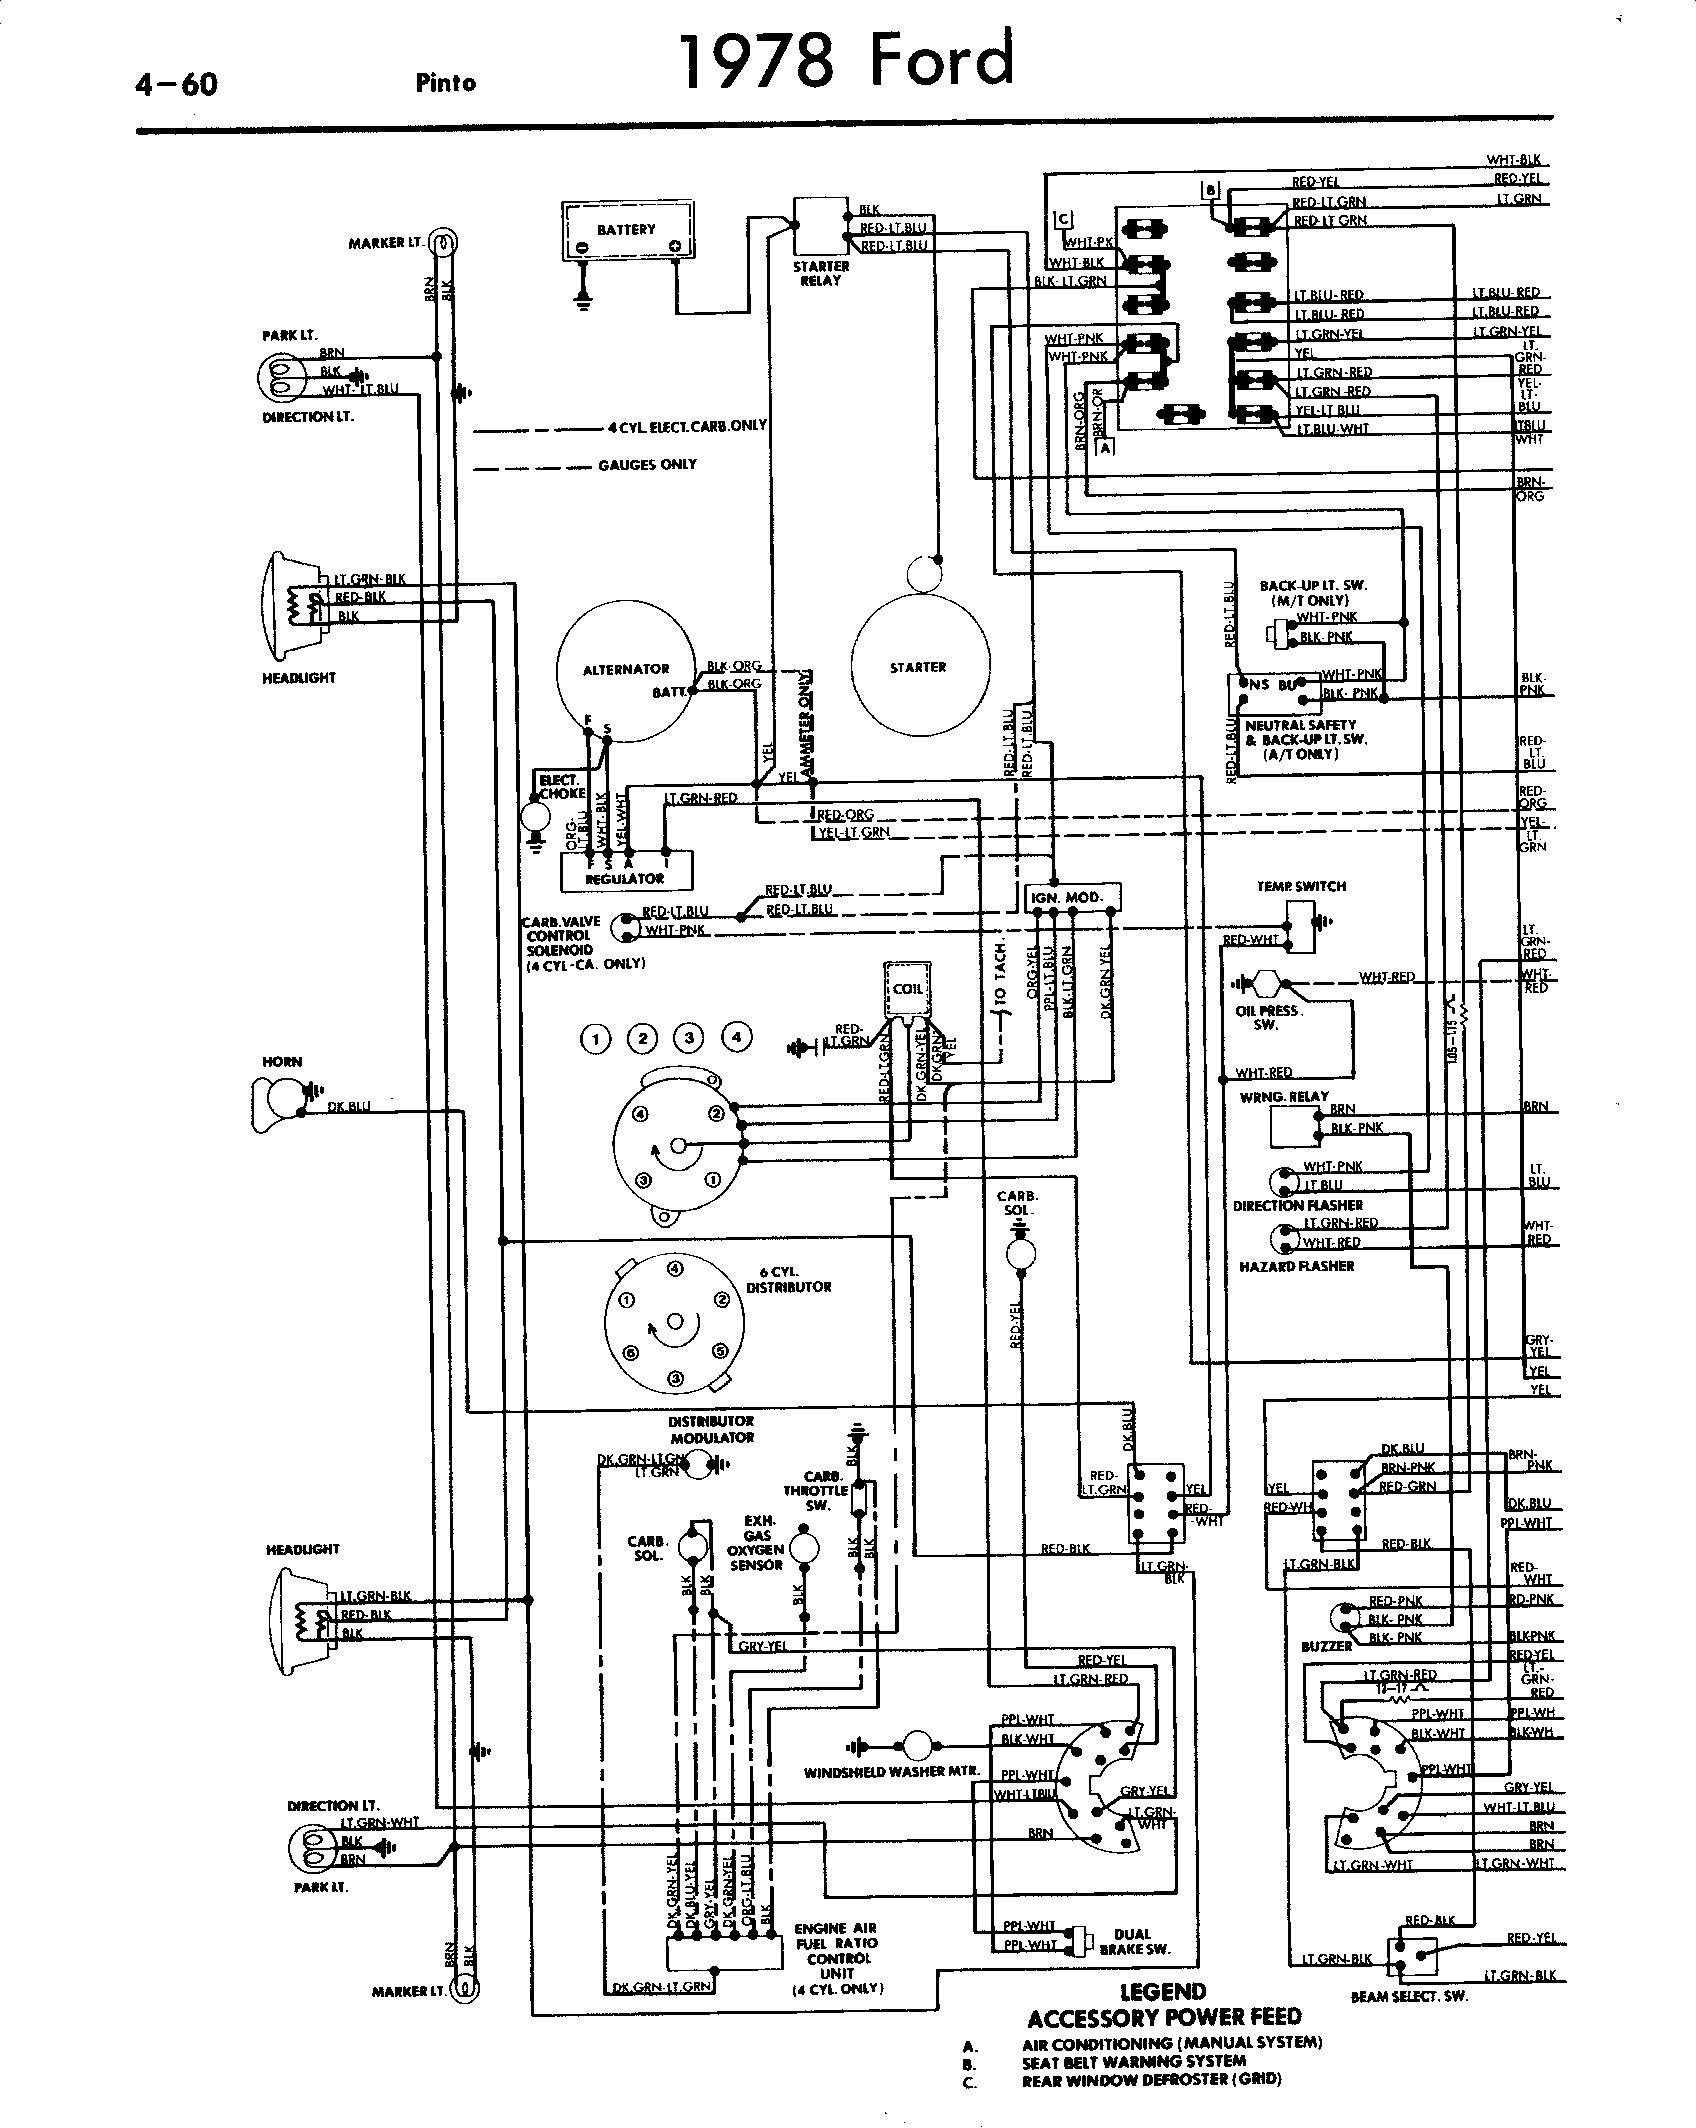 7 3 Ford Truck Wiring Diagram